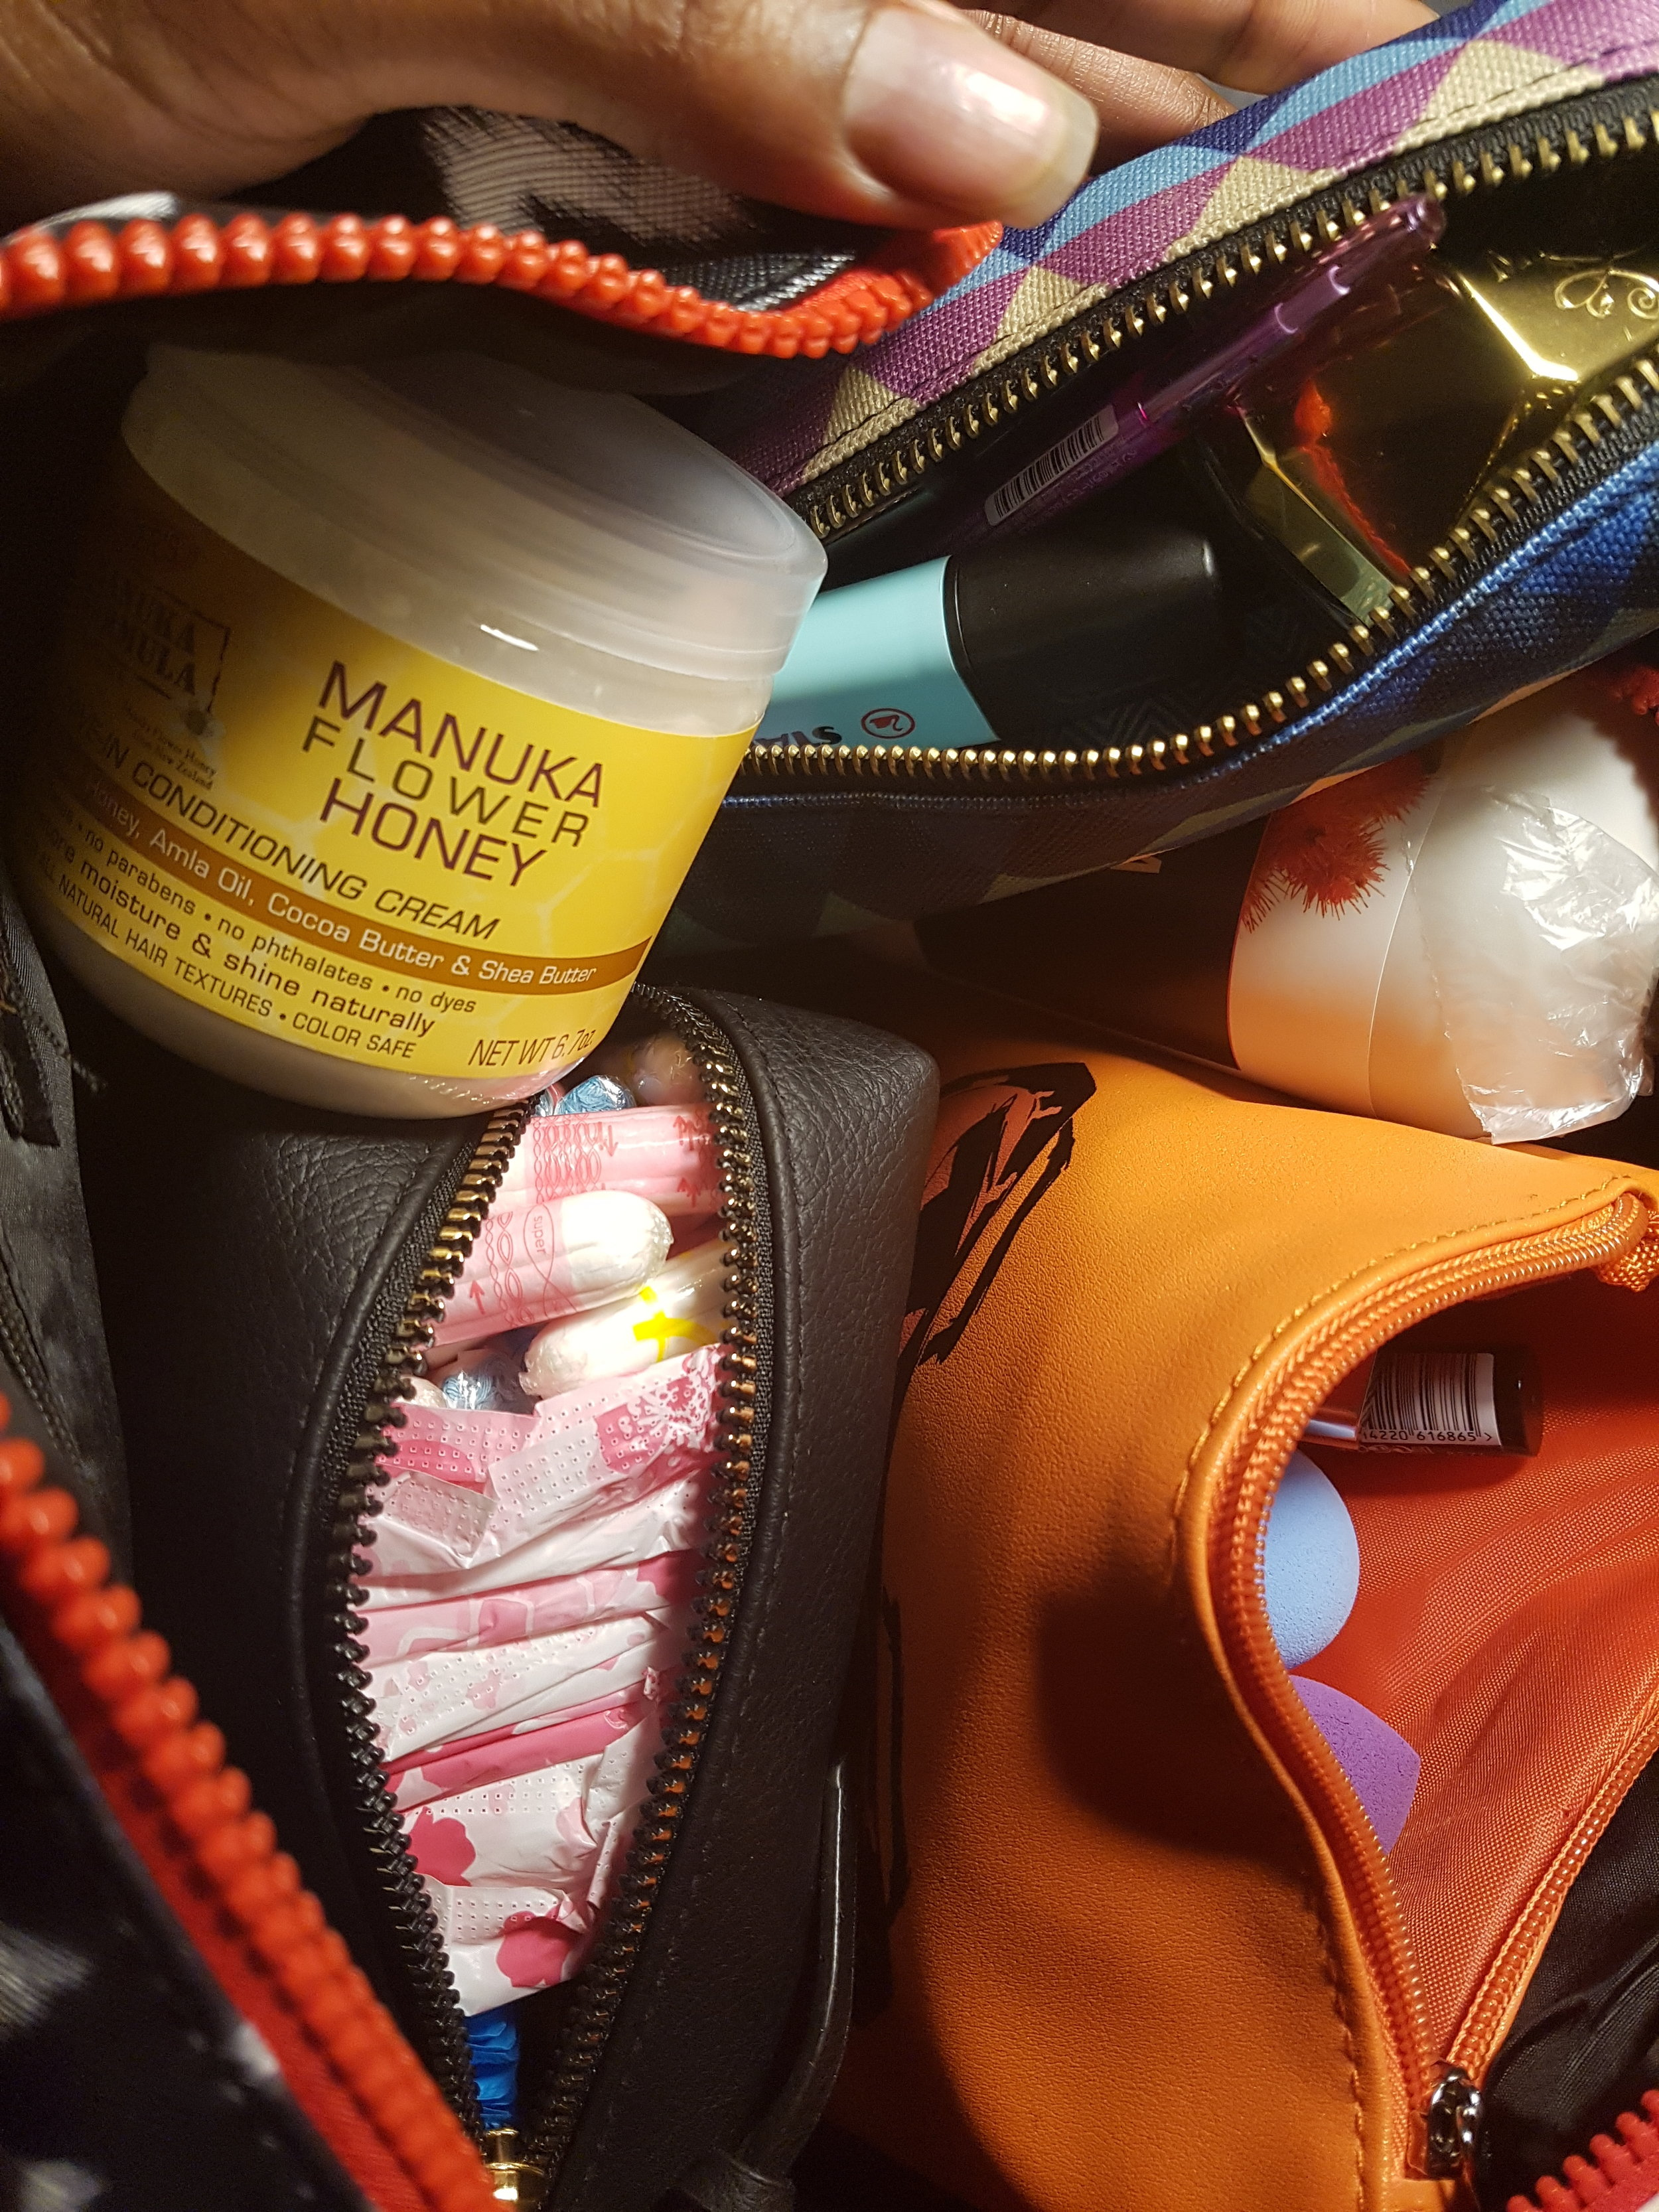 In one packing cube: natural hair shampoo and conditioner, feminine care and birth control, pencil case, make-up bag